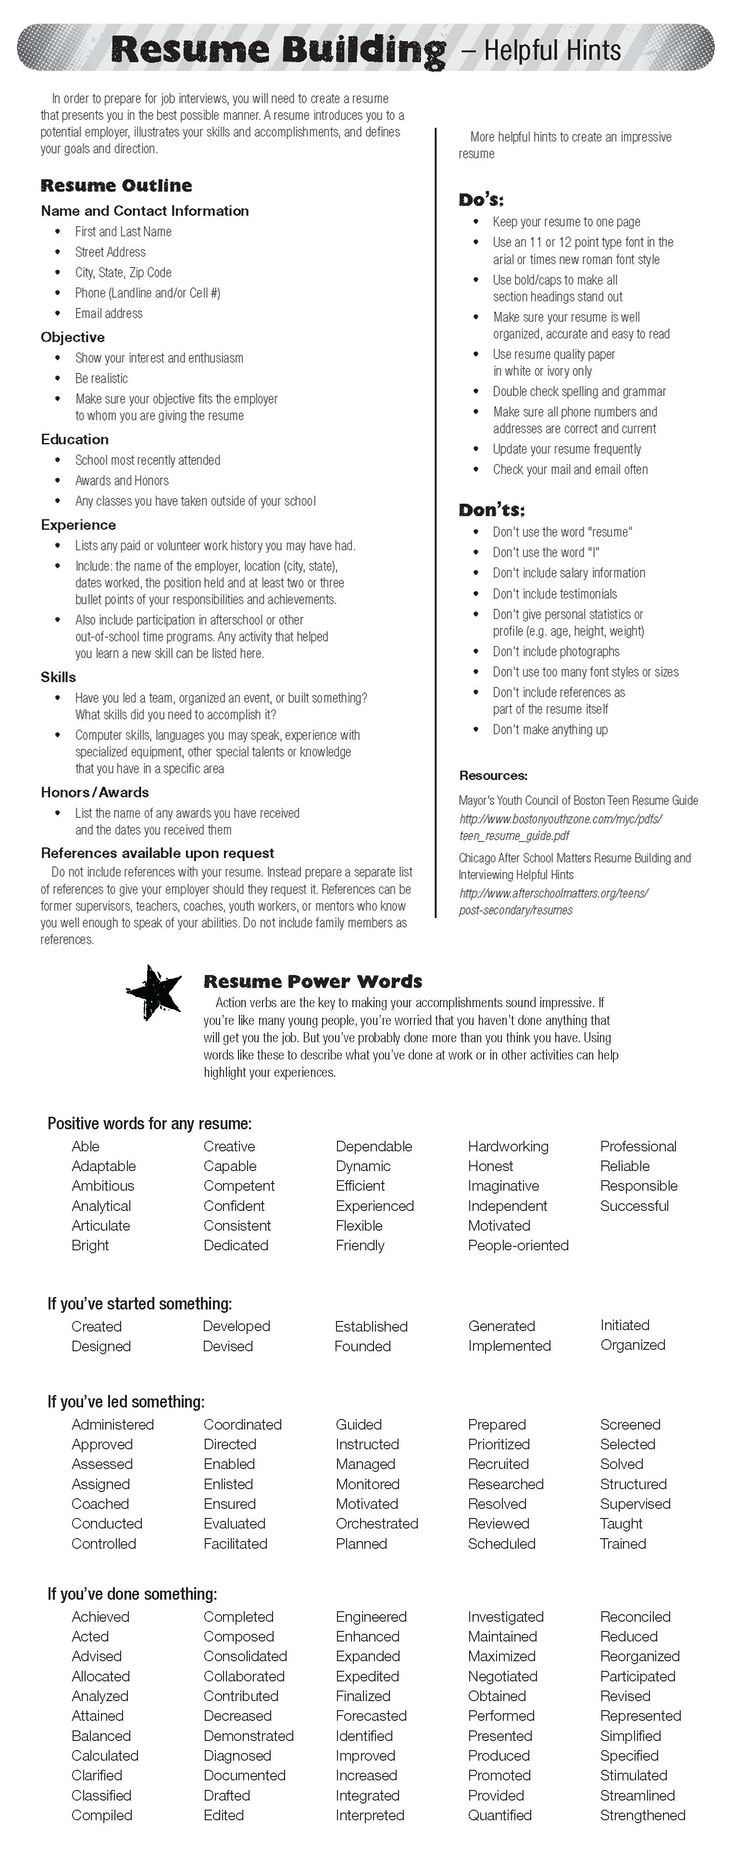 Opposenewapstandardsus  Inspiring  Ideas About Resume On Pinterest  Cv Format Resume  With Marvelous Check Out Todays Resume Building Tips Resume Resumepowerwords With Awesome Writing Skills On Resume Also Objective For College Resume In Addition Executive Format Resume Template And Resumes On Microsoft Word As Well As Truck Driver Resume Sample Additionally Chef Resume Samples From Pinterestcom With Opposenewapstandardsus  Marvelous  Ideas About Resume On Pinterest  Cv Format Resume  With Awesome Check Out Todays Resume Building Tips Resume Resumepowerwords And Inspiring Writing Skills On Resume Also Objective For College Resume In Addition Executive Format Resume Template From Pinterestcom